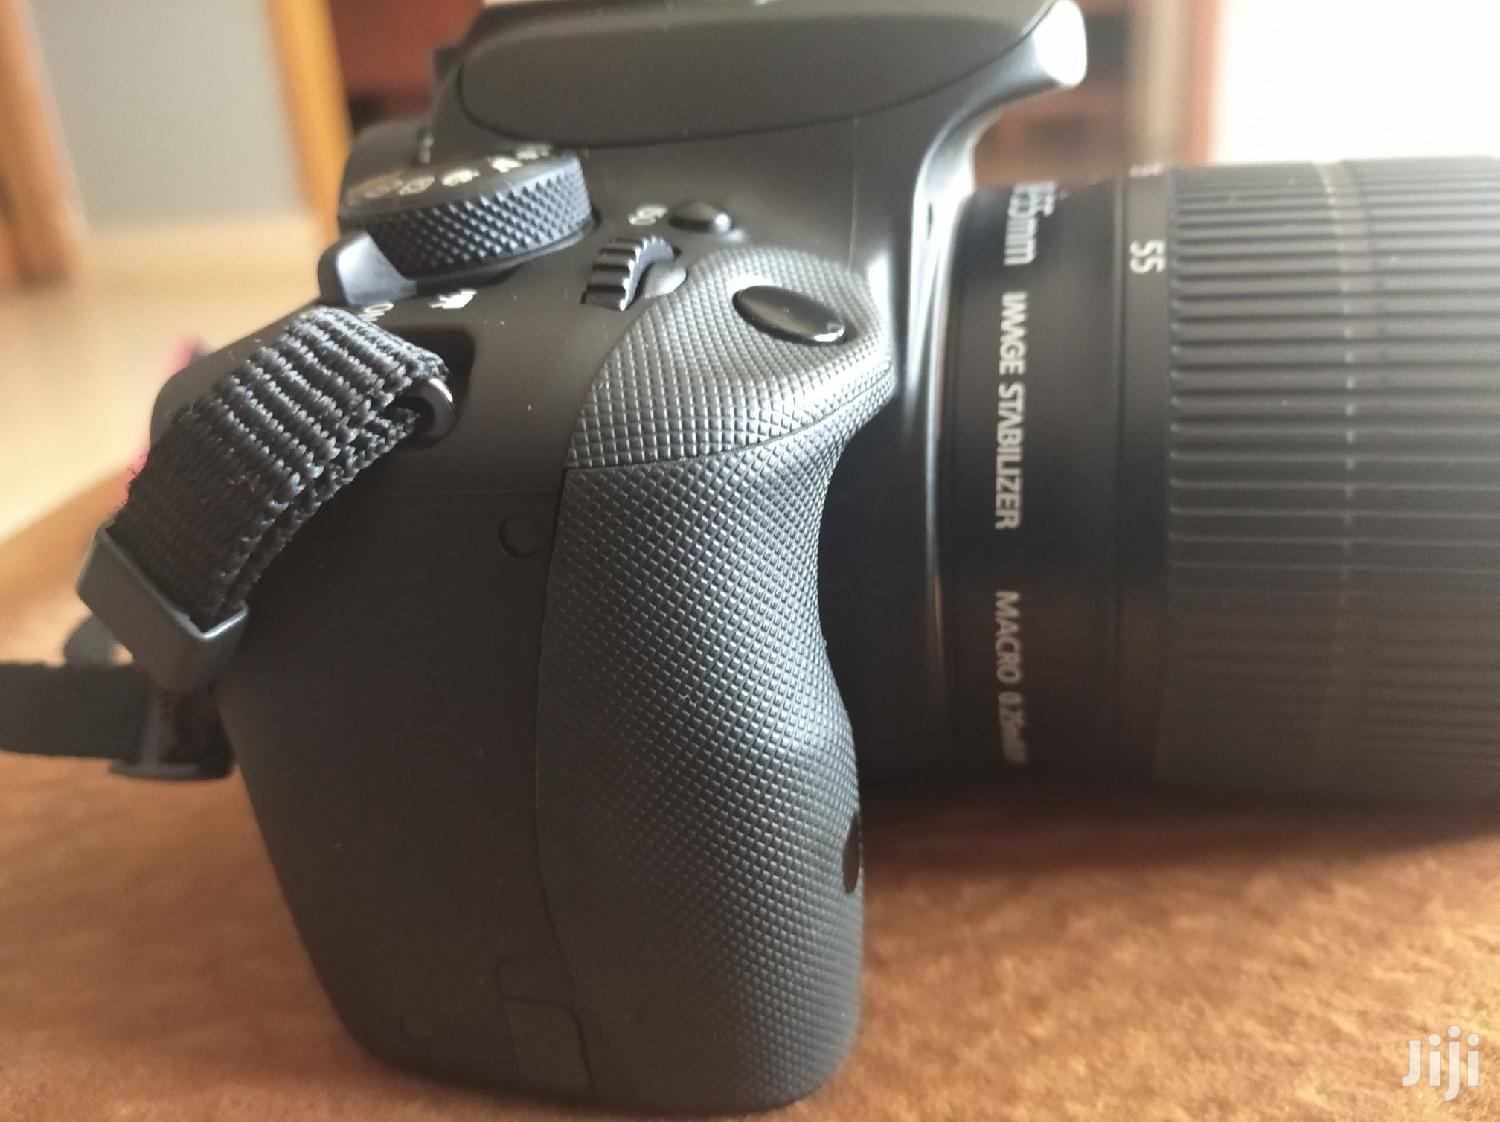 Canon Rebel SL1 100D DSLR Camera Bundle Package | Photo & Video Cameras for sale in Kampala, Central Region, Uganda